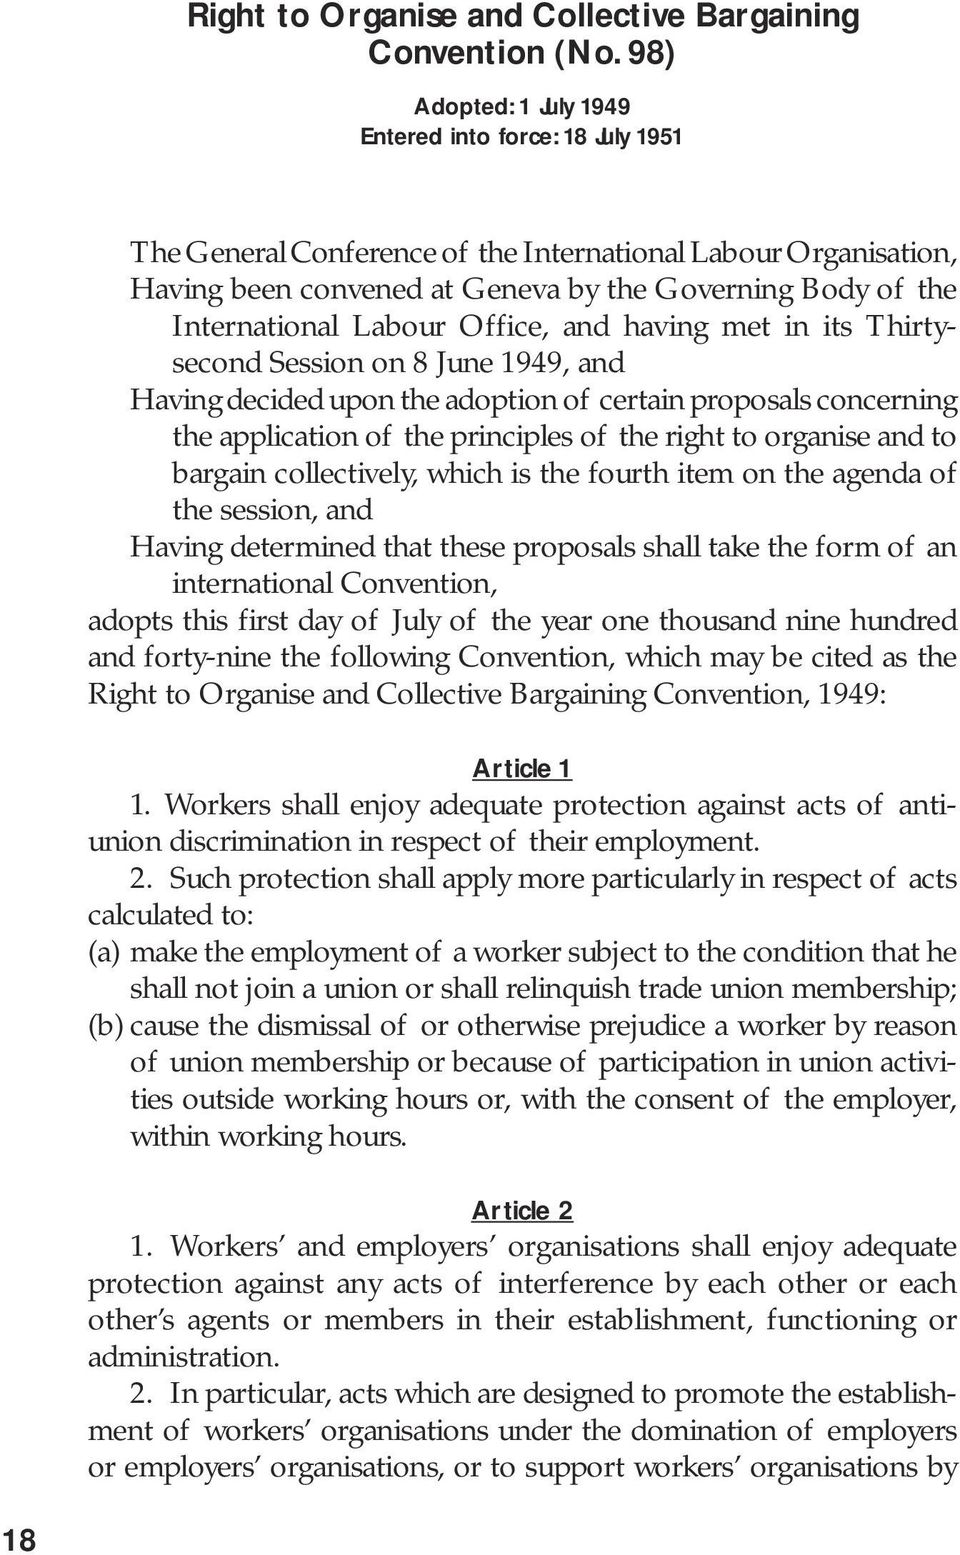 Labour Office, and having met in its Thirtysecond Session on 8 June 1949, and Having decided upon the adoption of certain proposals concerning the application of the principles of the right to